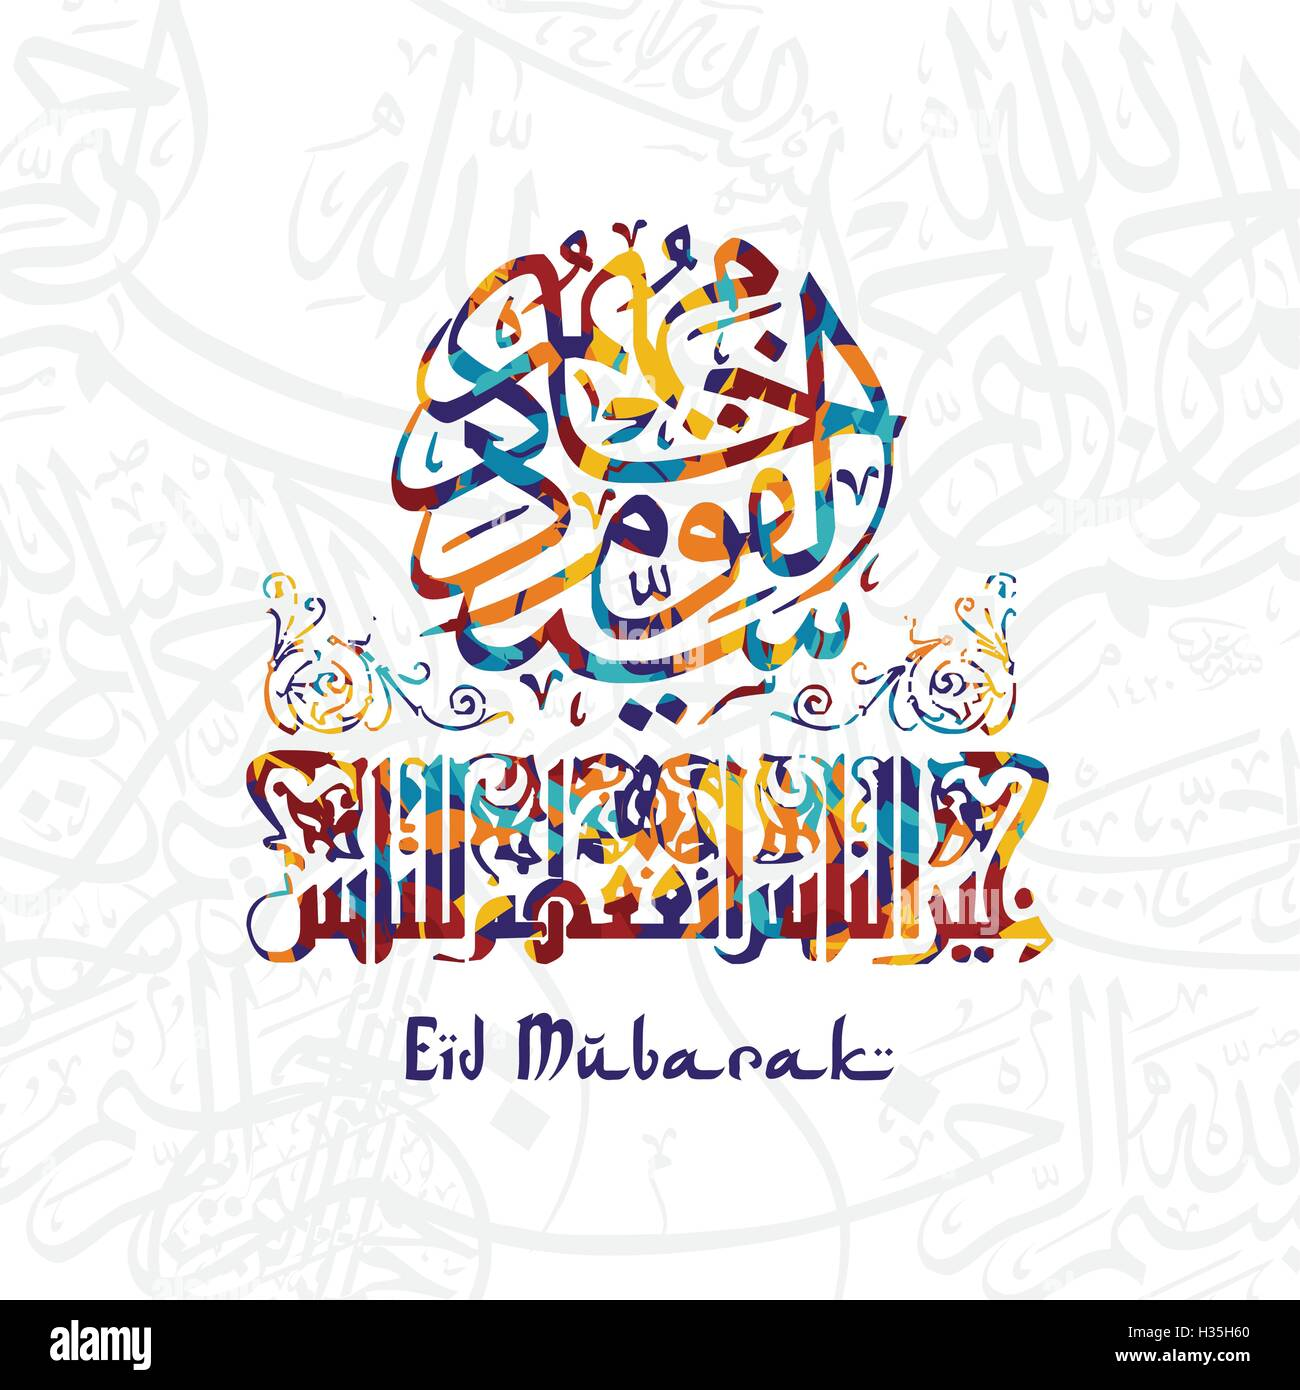 Eid mubarak cut out stock images pictures alamy happy eid mubarak greetings arabic calligraphy art stock image m4hsunfo